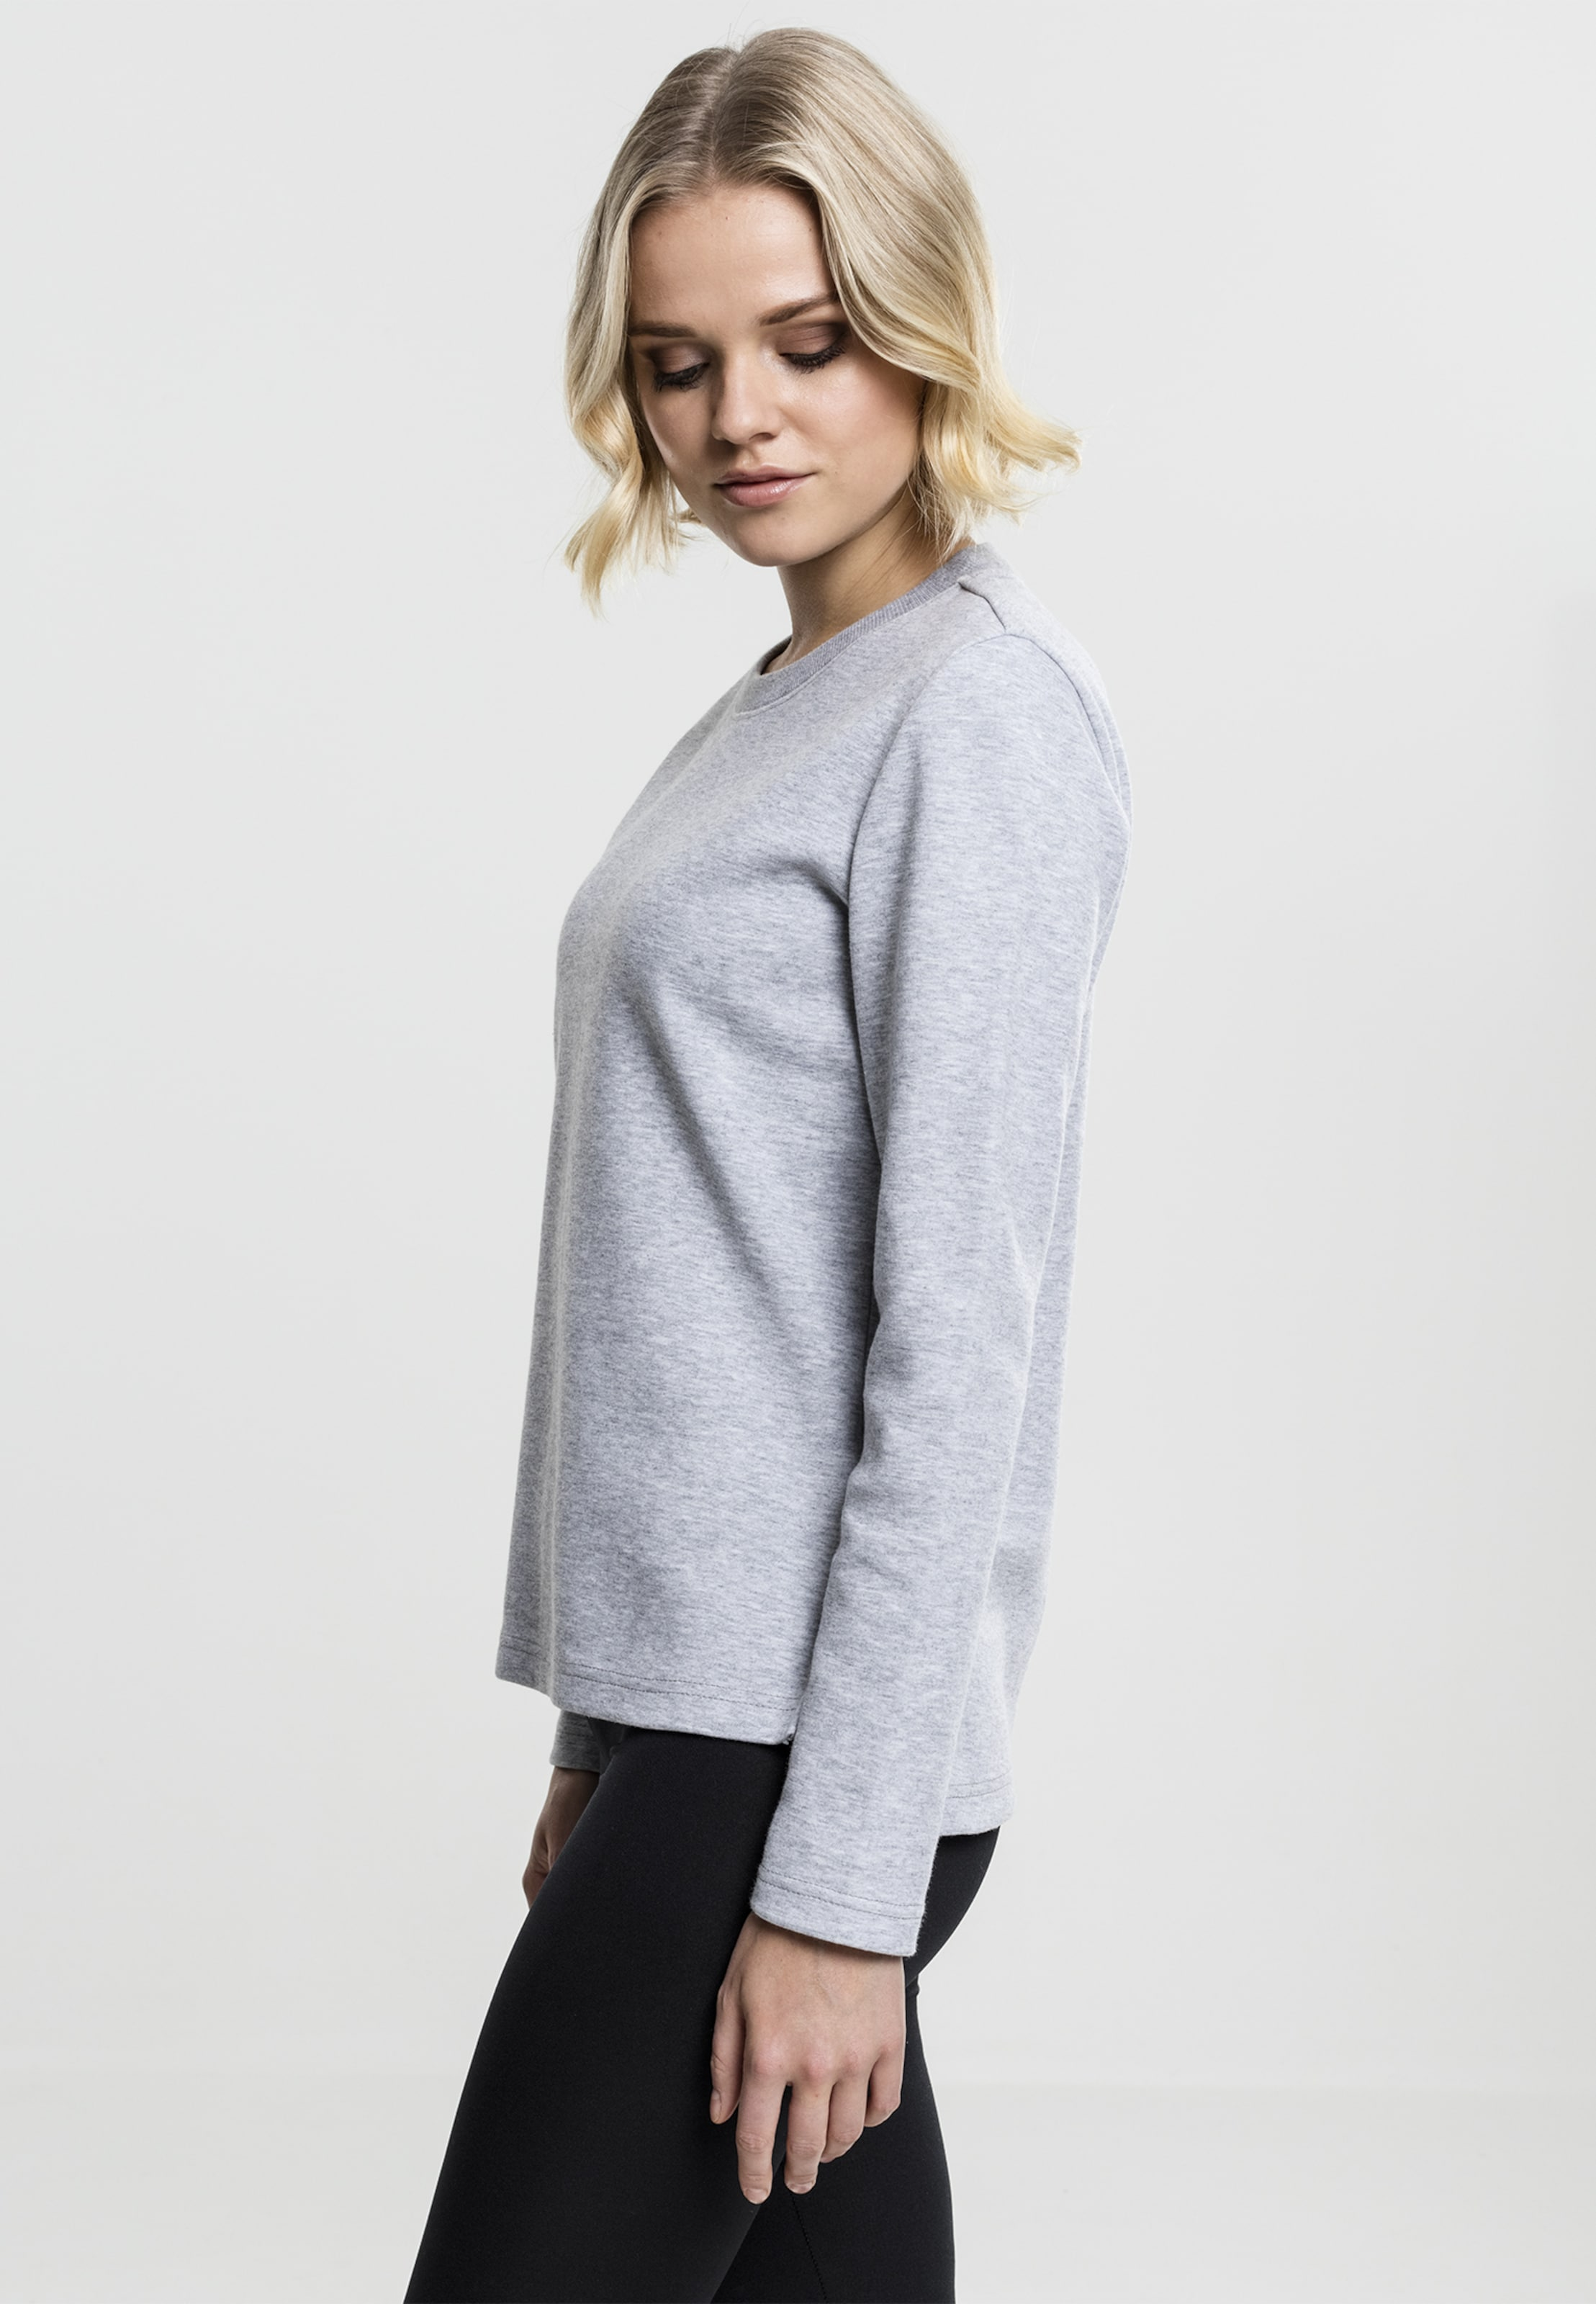 Urban In Classics Crewneck Athletic Graumeliert rBeQxCodWE